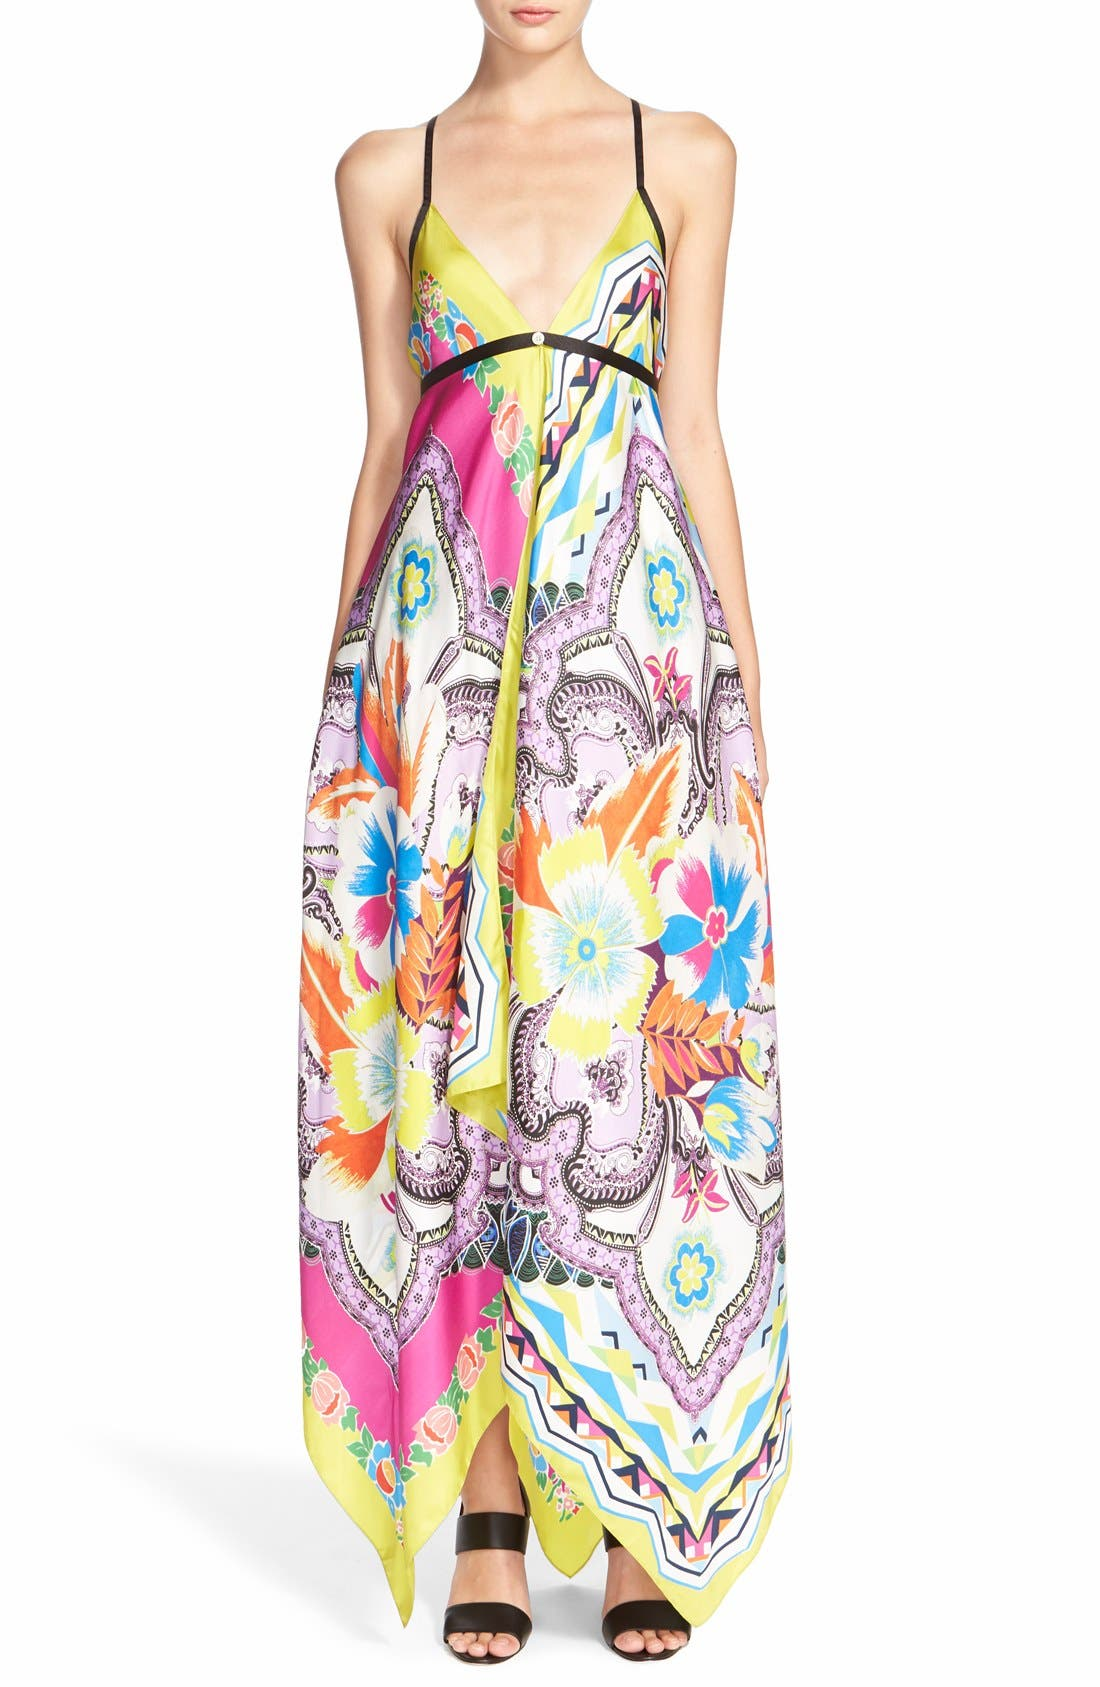 Alternate Image 1 Selected - Etro Floral Print Silk Handkerchief Dress